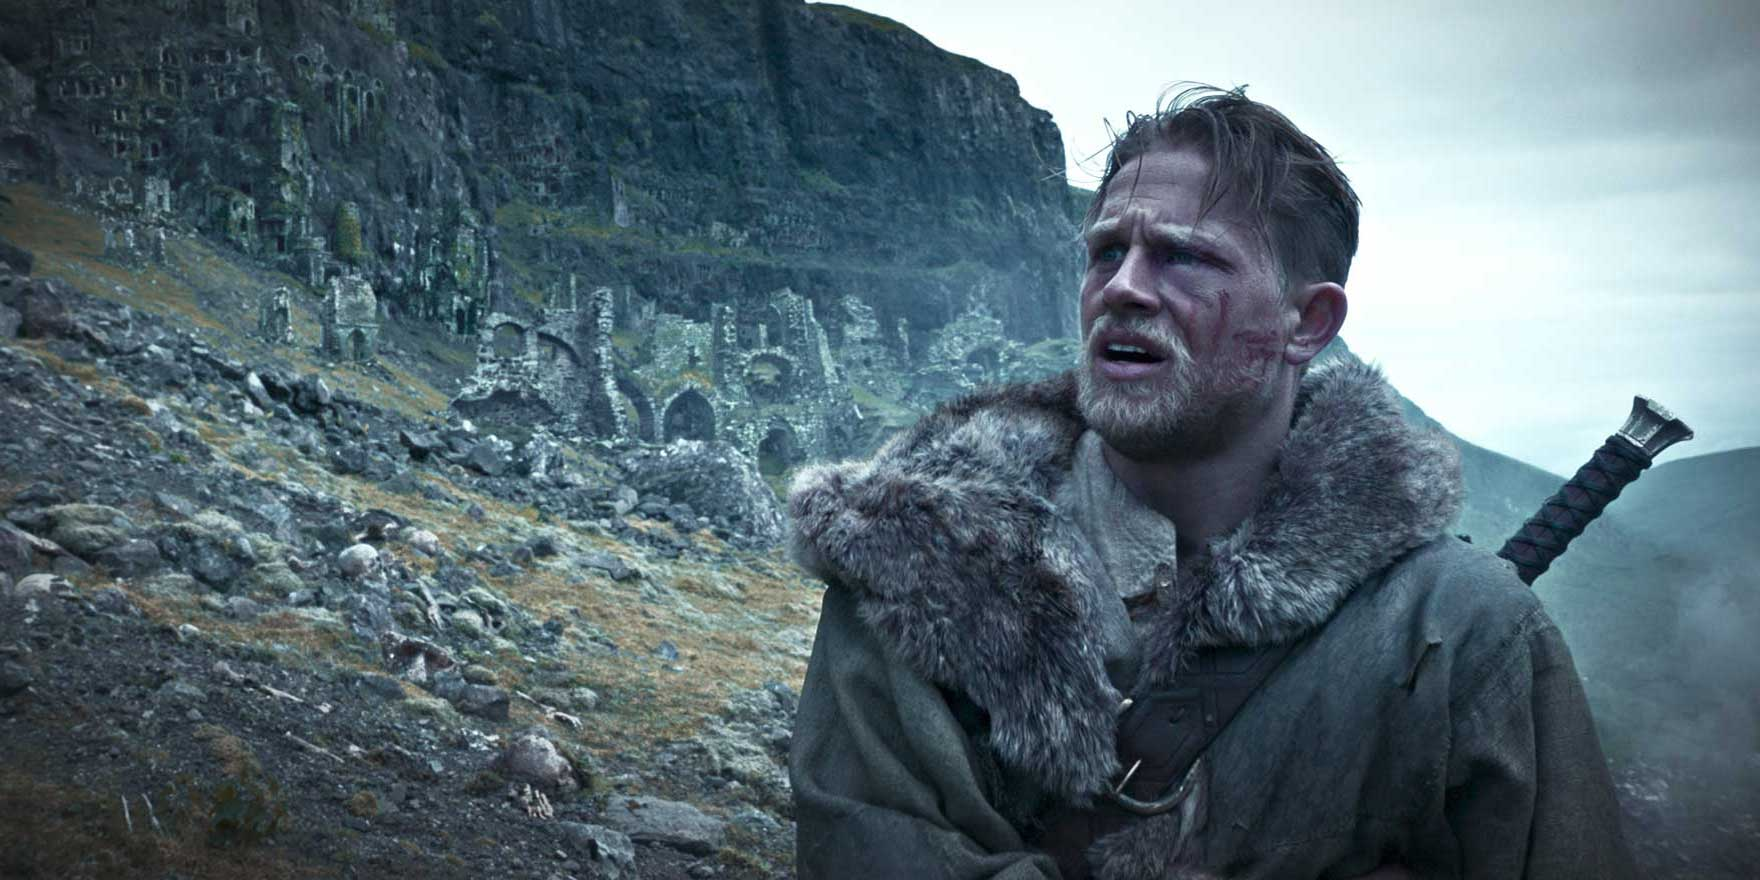 King Arthur: Legend of the Sword - Header Image